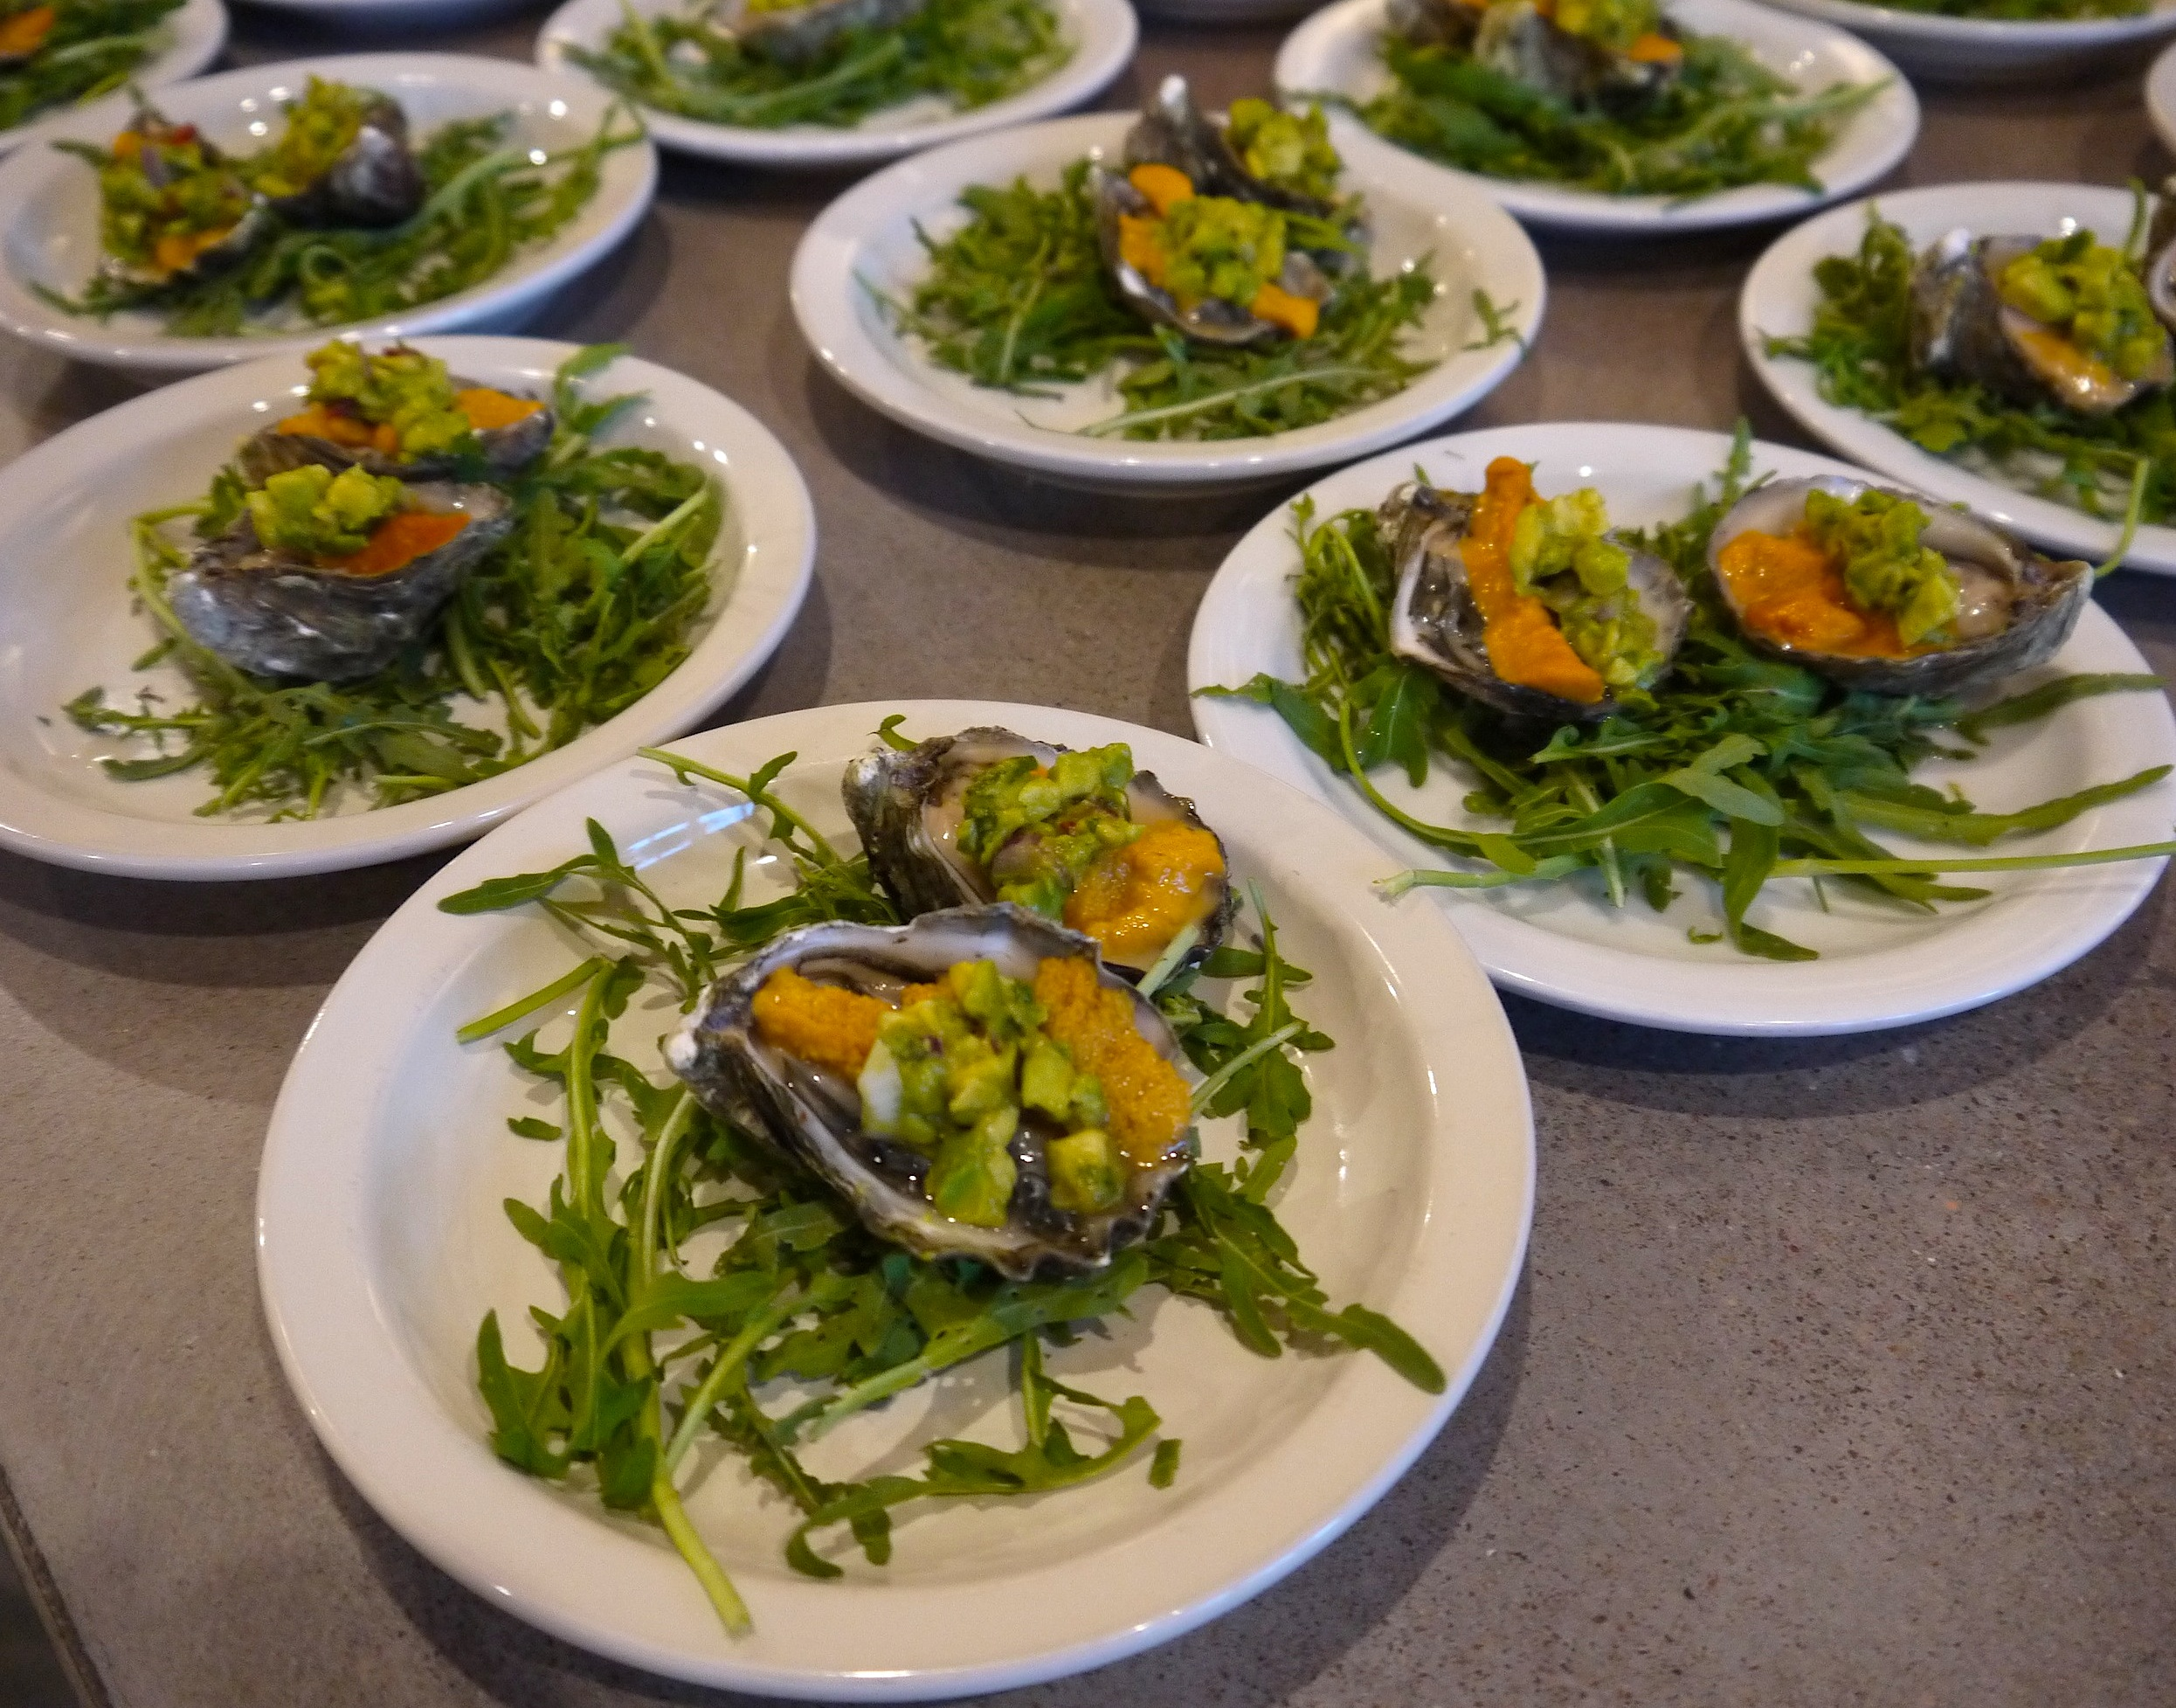 Jeff Olsson started us off with an oyster, uni and avocado plate paired with the 2016 Kaena Grenache Blanc.